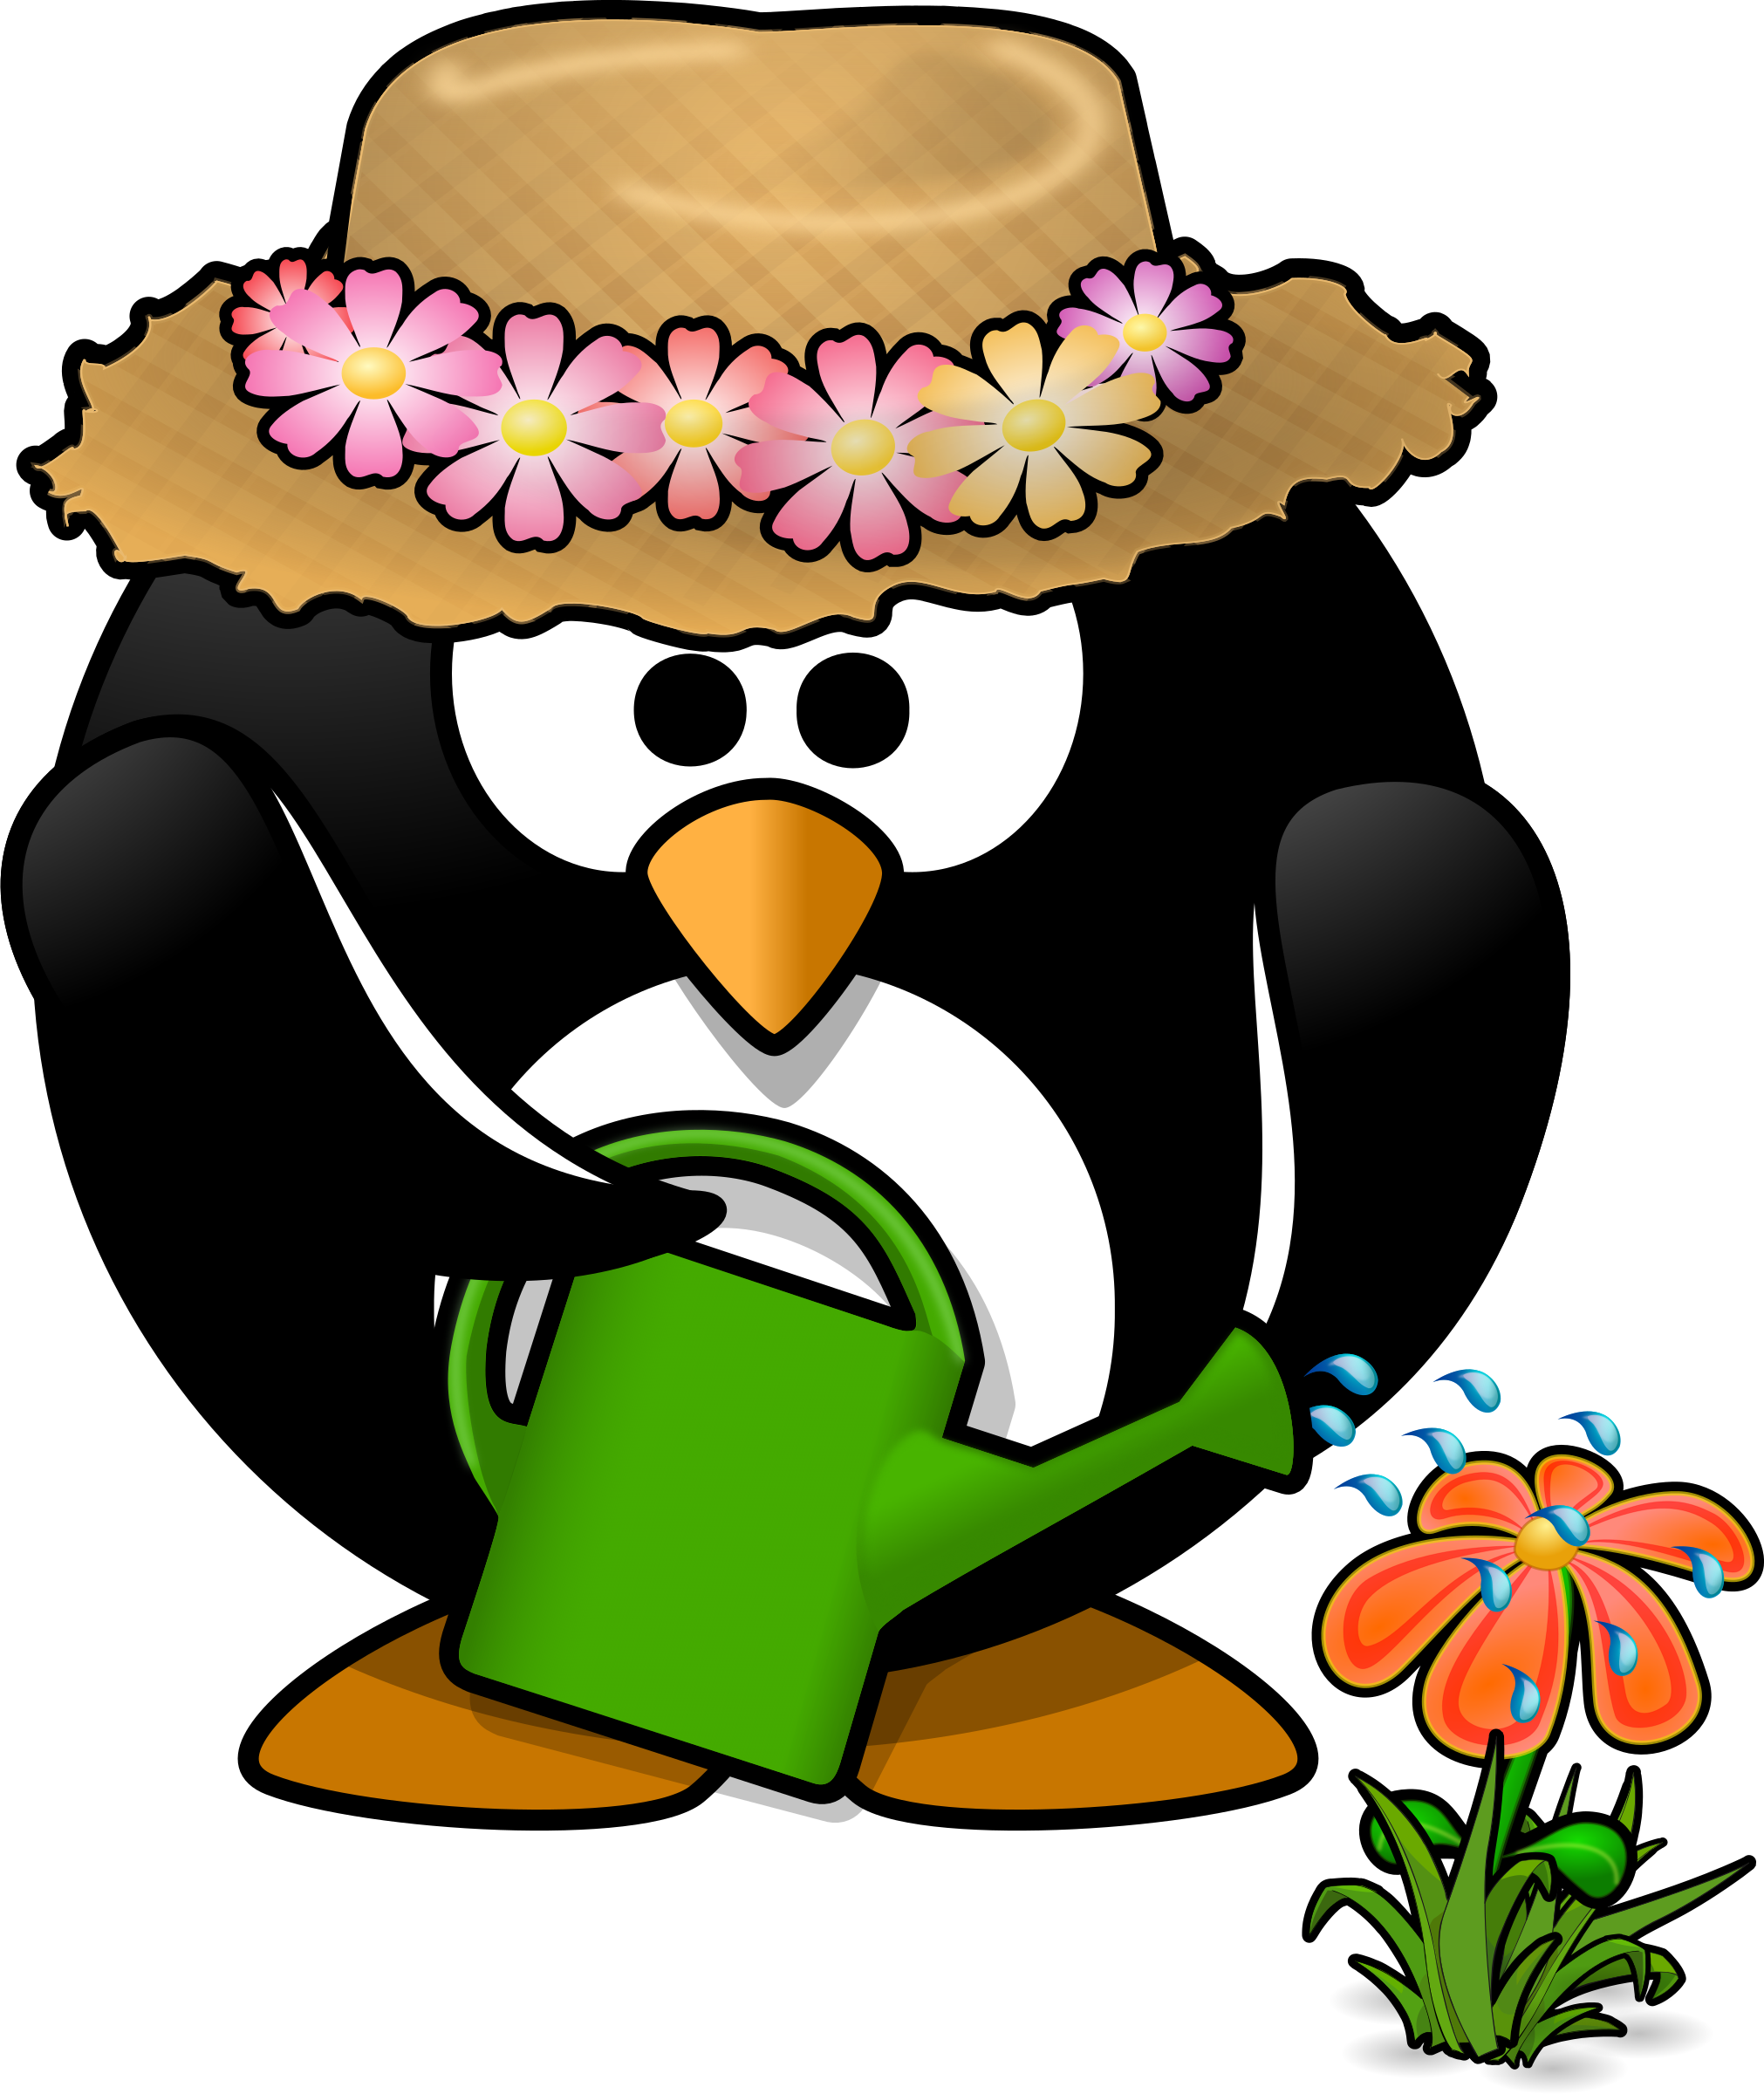 Summer growing clipart graphic library Microsoft clip art gardening clipart garden penguin toublanc ... graphic library